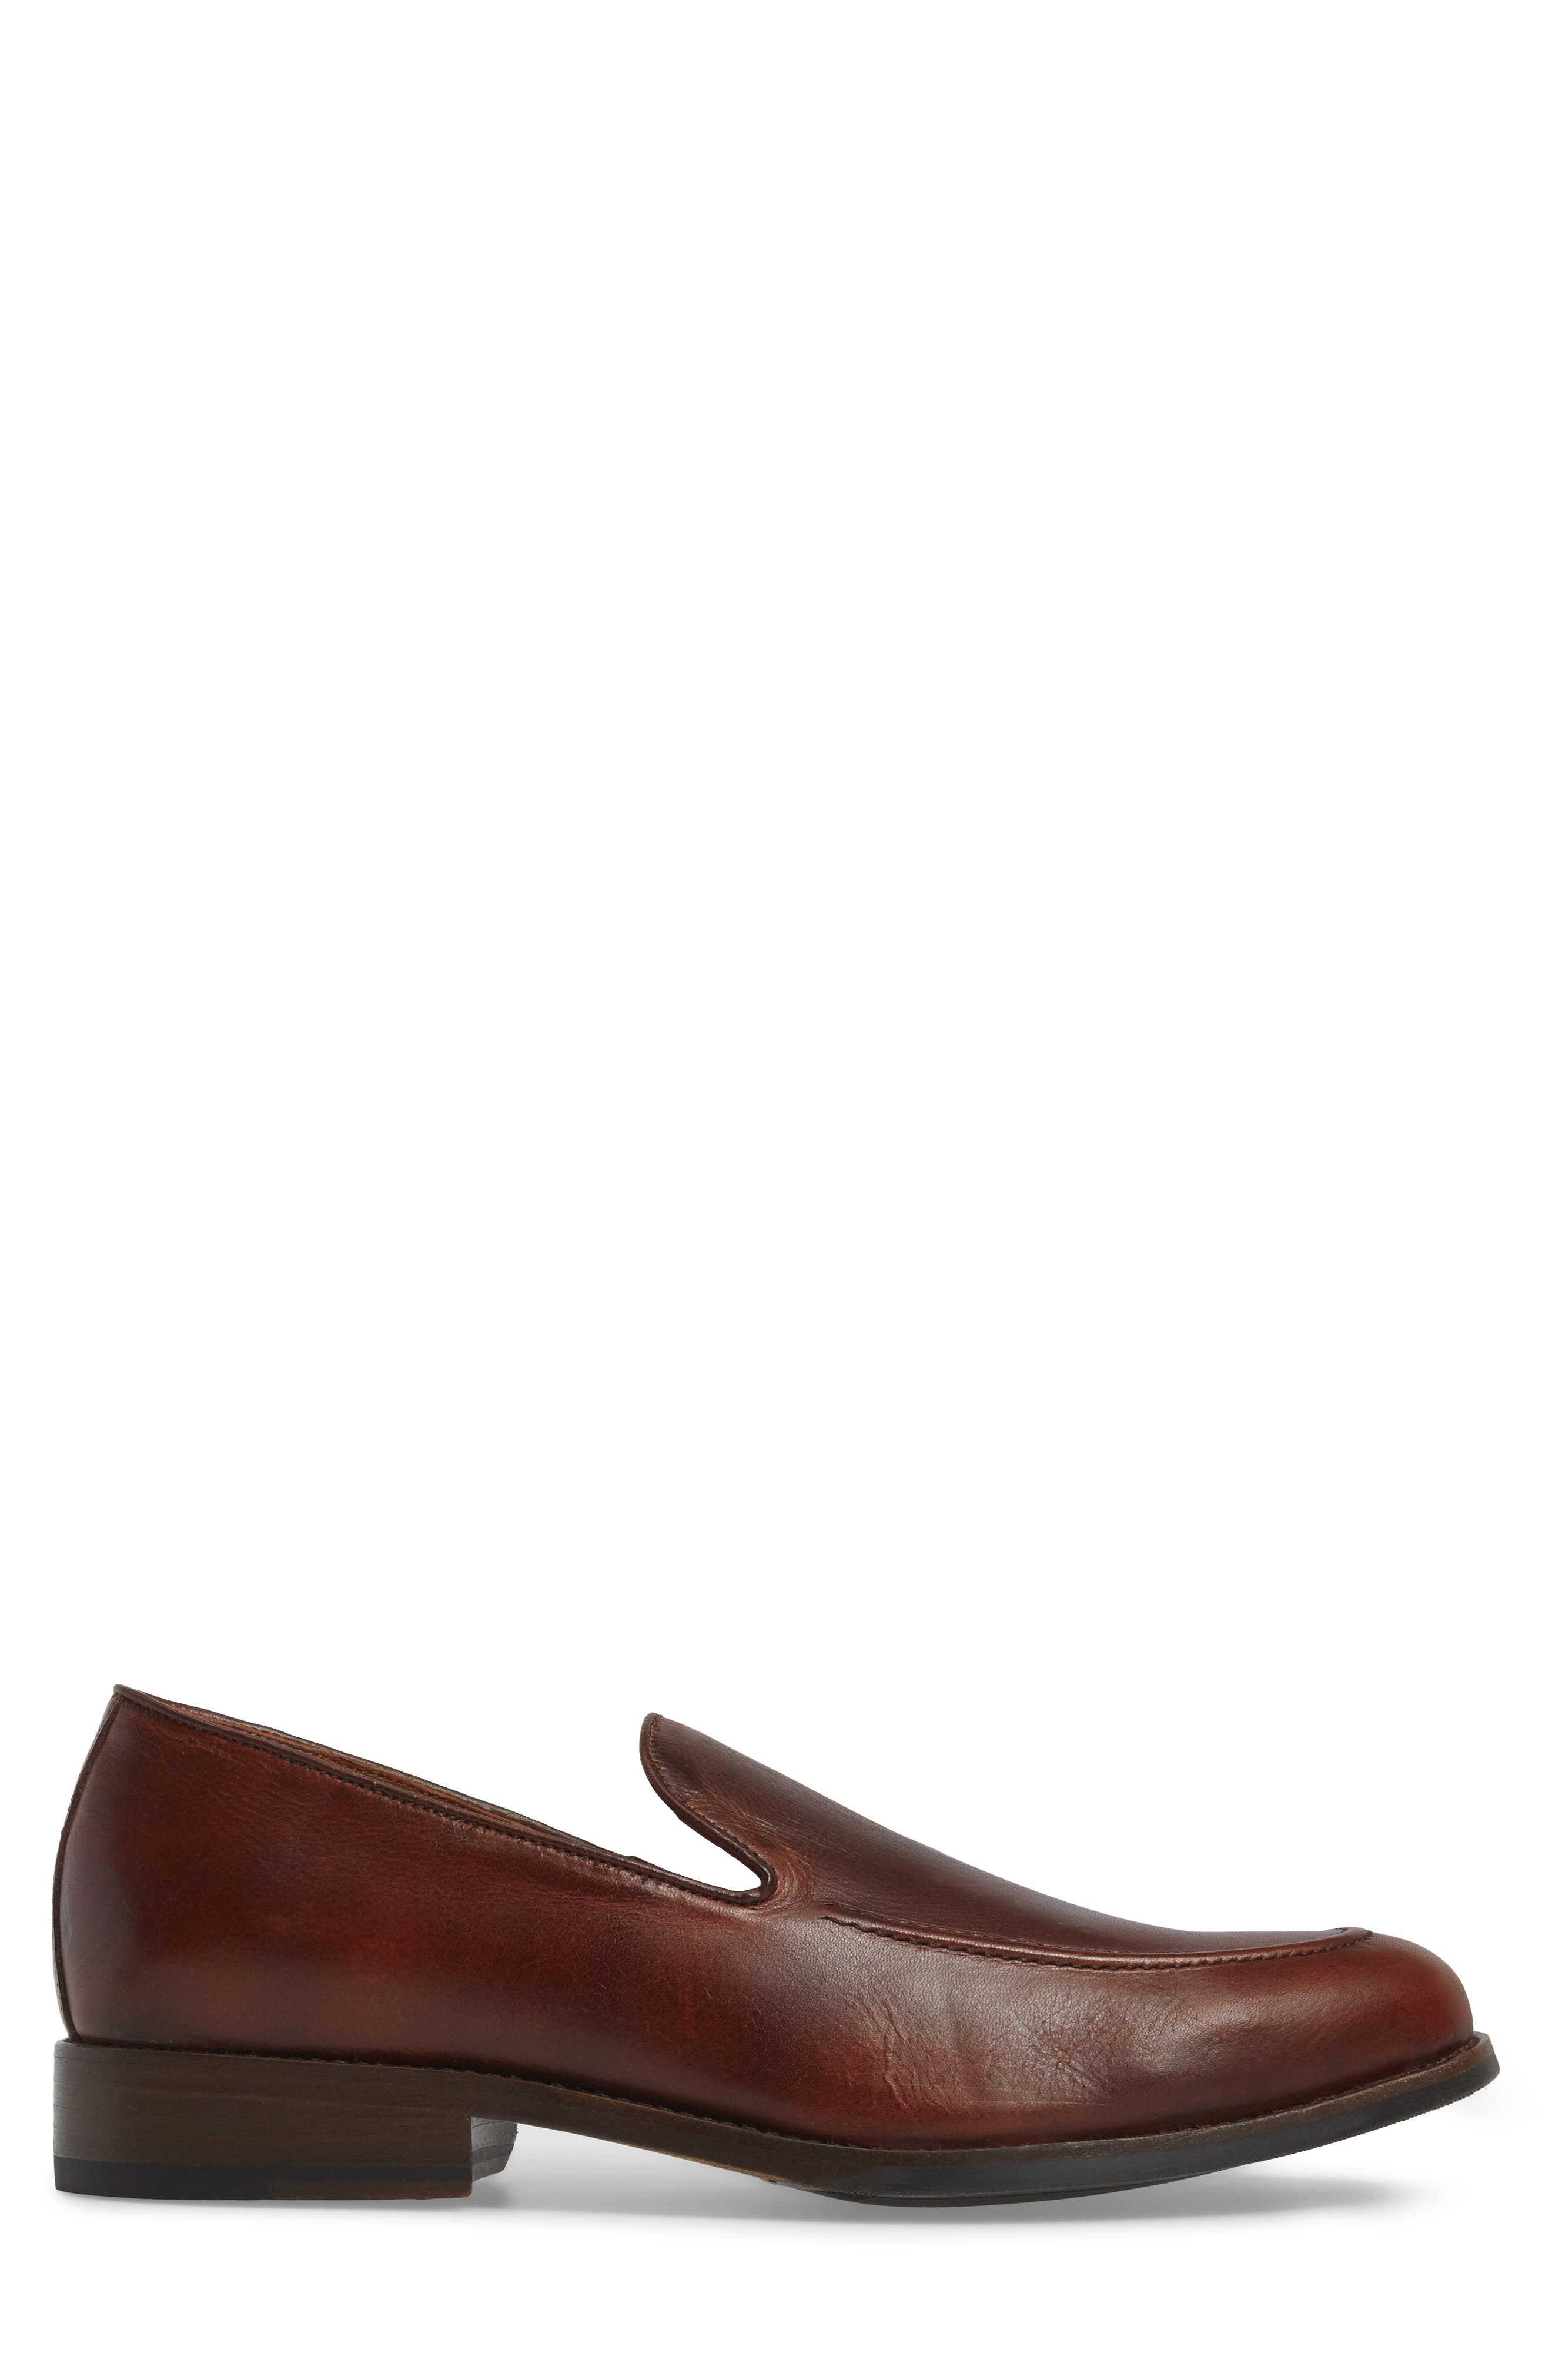 Jefferson Venetian Loafer,                             Alternate thumbnail 3, color,                             BROWN